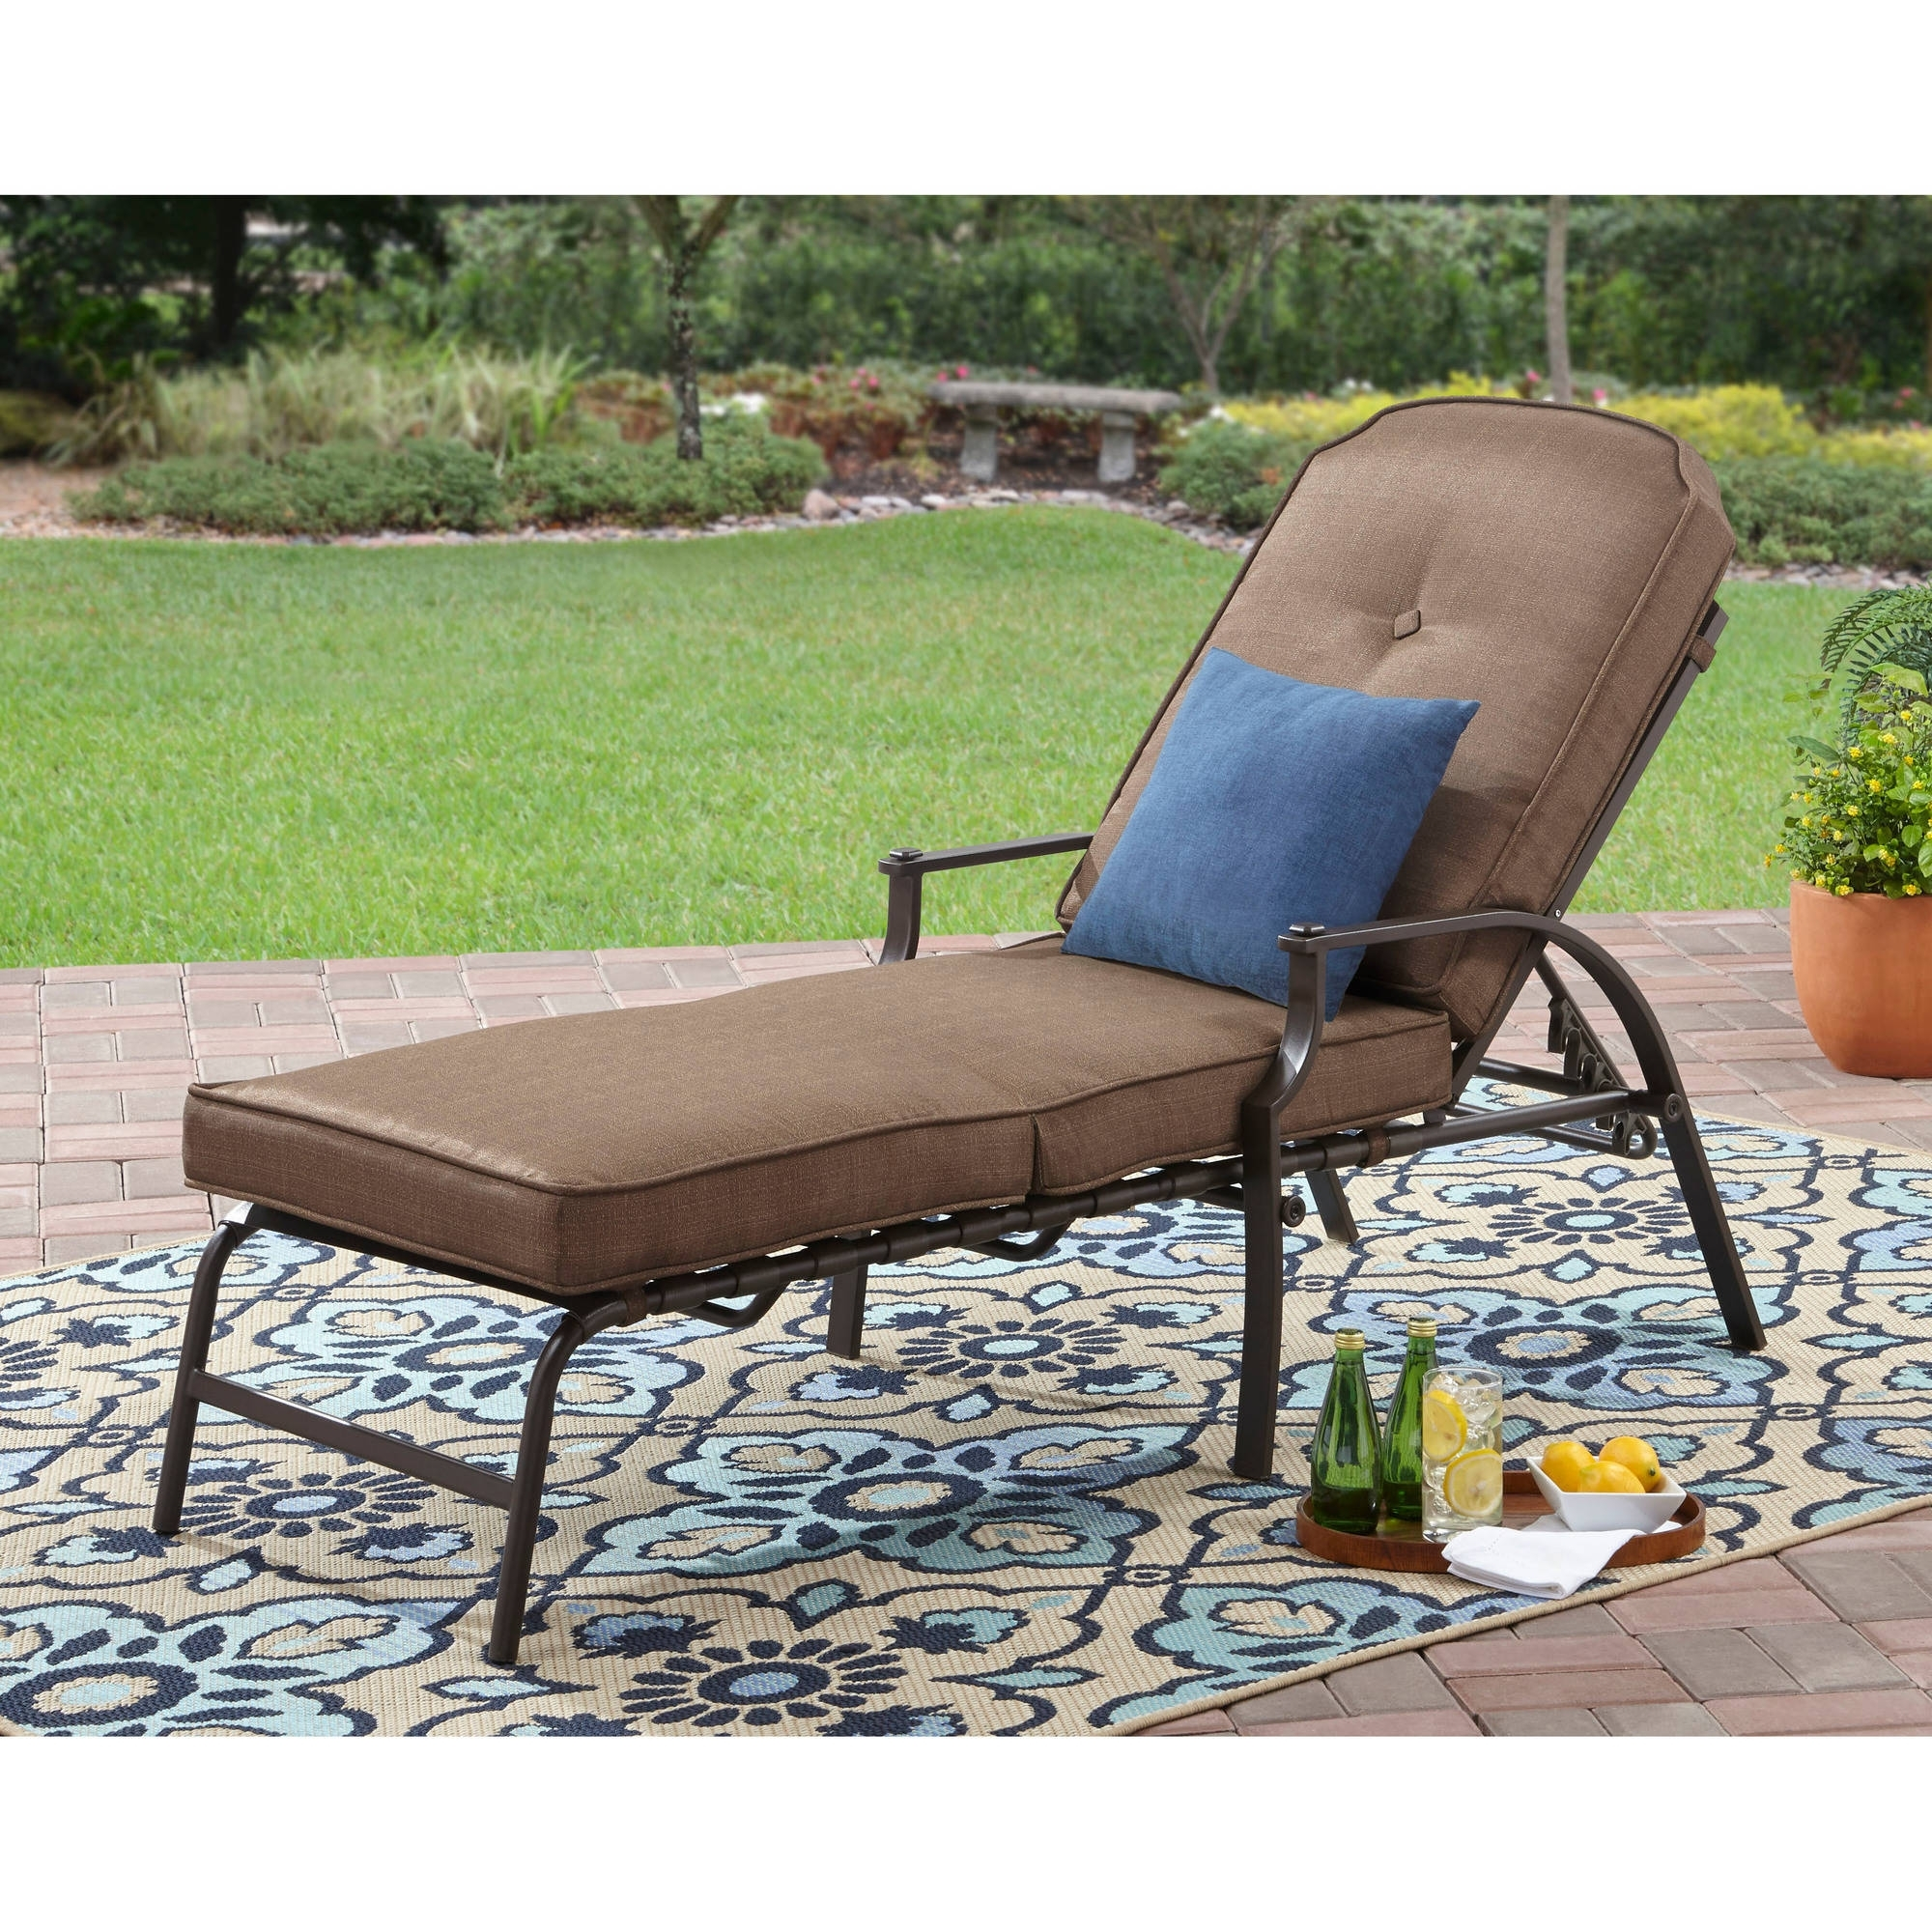 Walmart Outdoor Chaise Lounges Throughout Recent Mainstays Wentworth Chaise Lounge – Walmart (View 8 of 15)